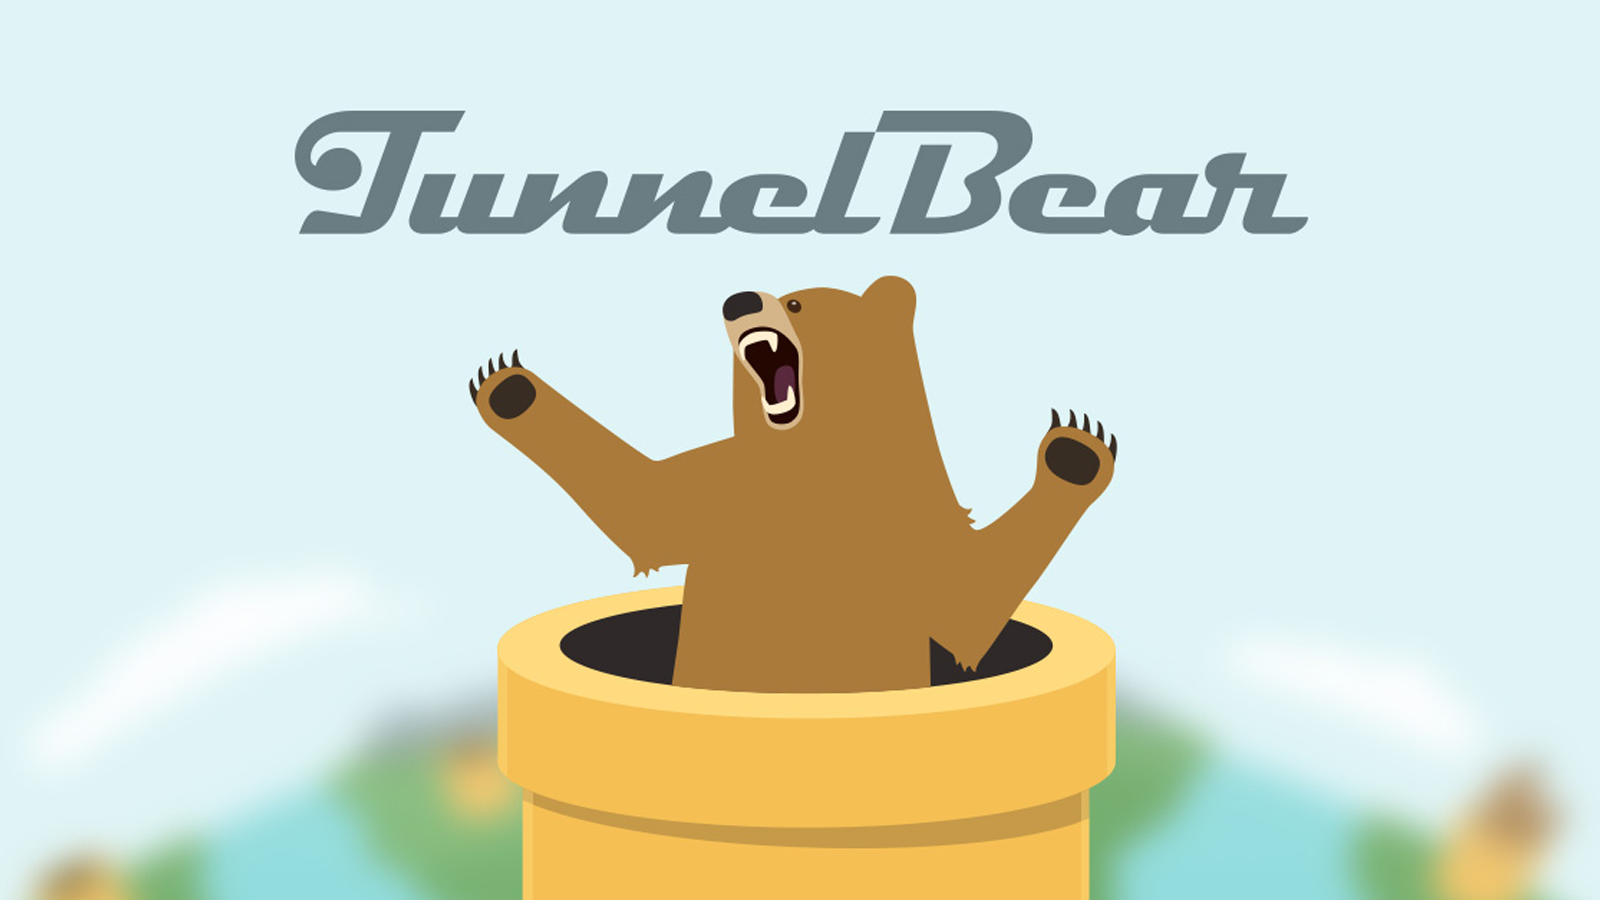 Tunnelbear name and logo against blurry mountain background